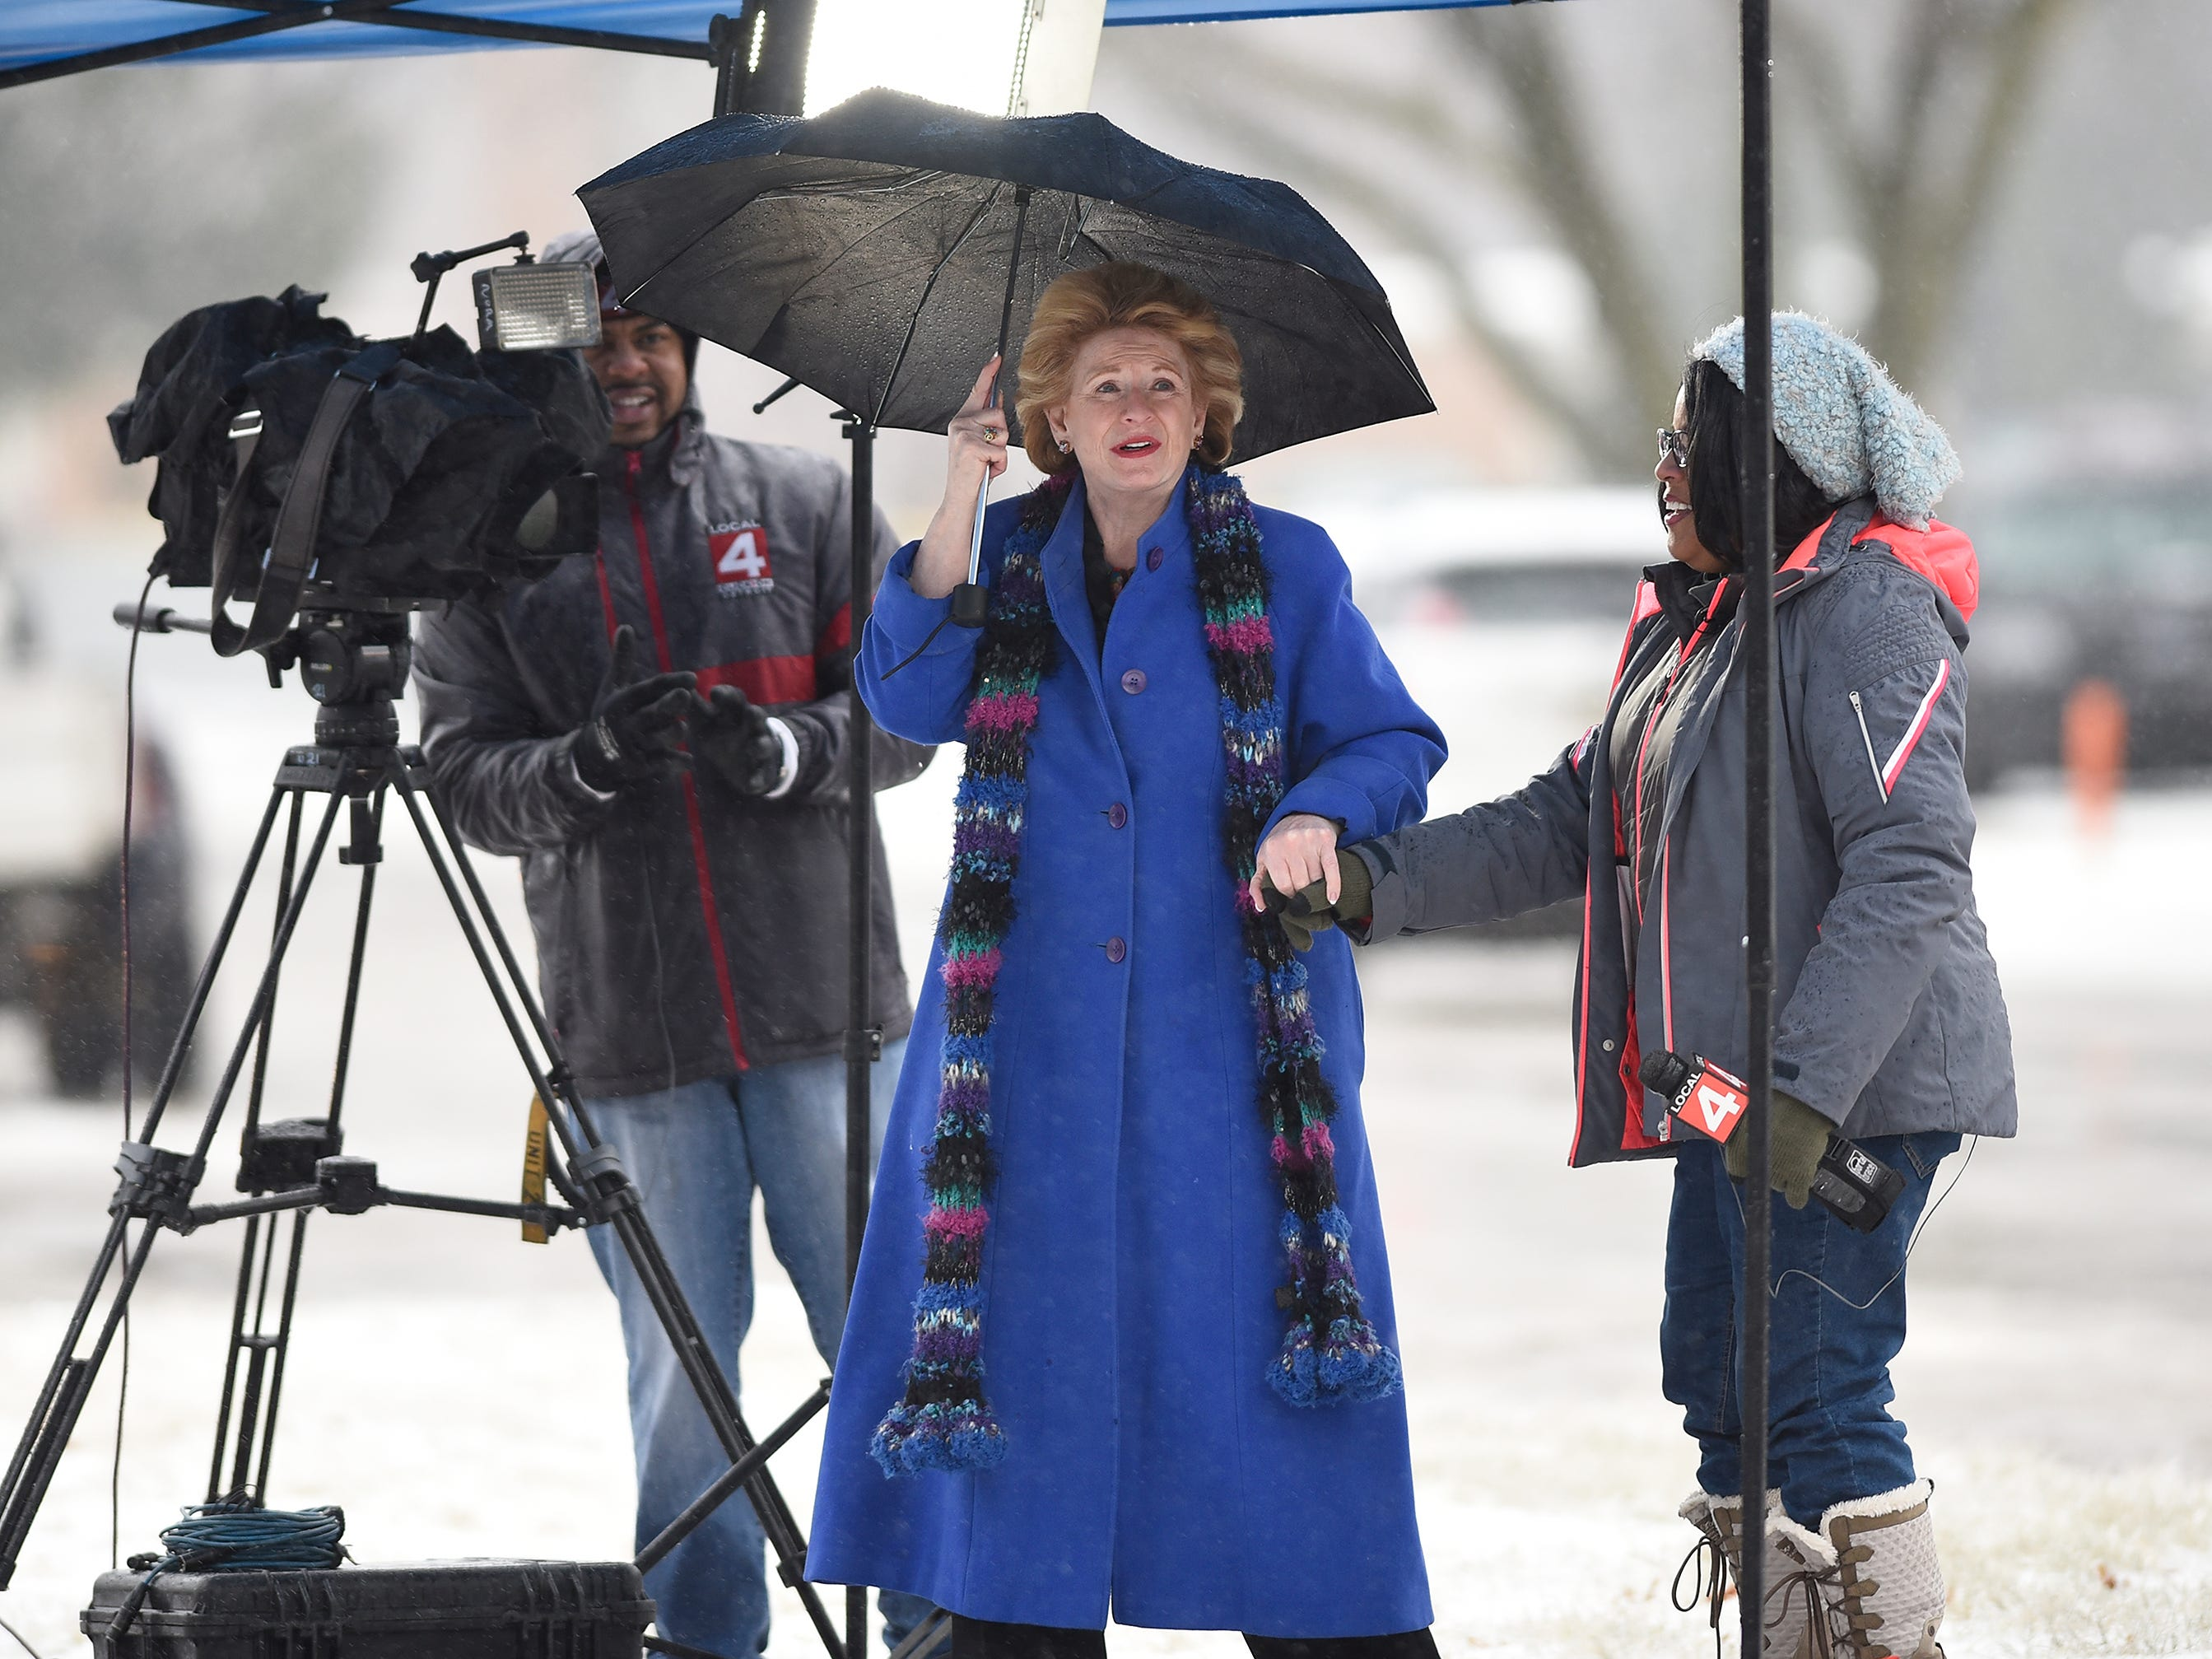 U.S. Senator Debbie Stabenow prepares to do a interview with WDIV reporter Paula Tutman before the start of the funeral of John D. Dingell.